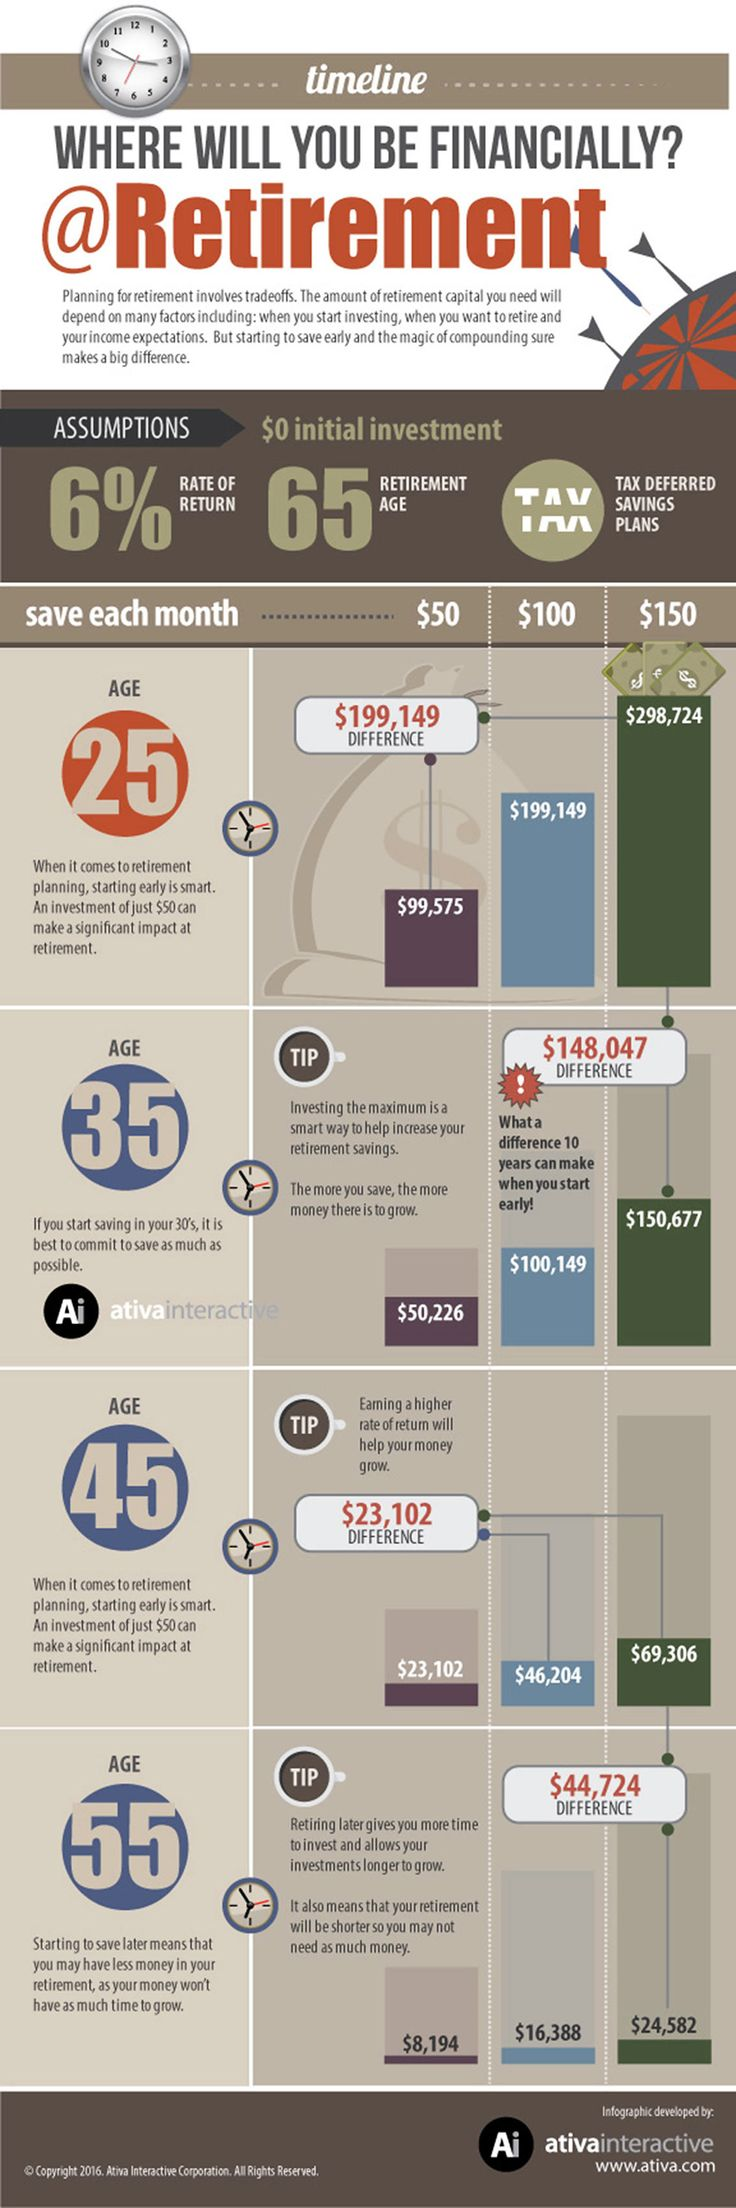 Where Will You Be Financially At Retirement Infographic. Topic: retire, money, saving